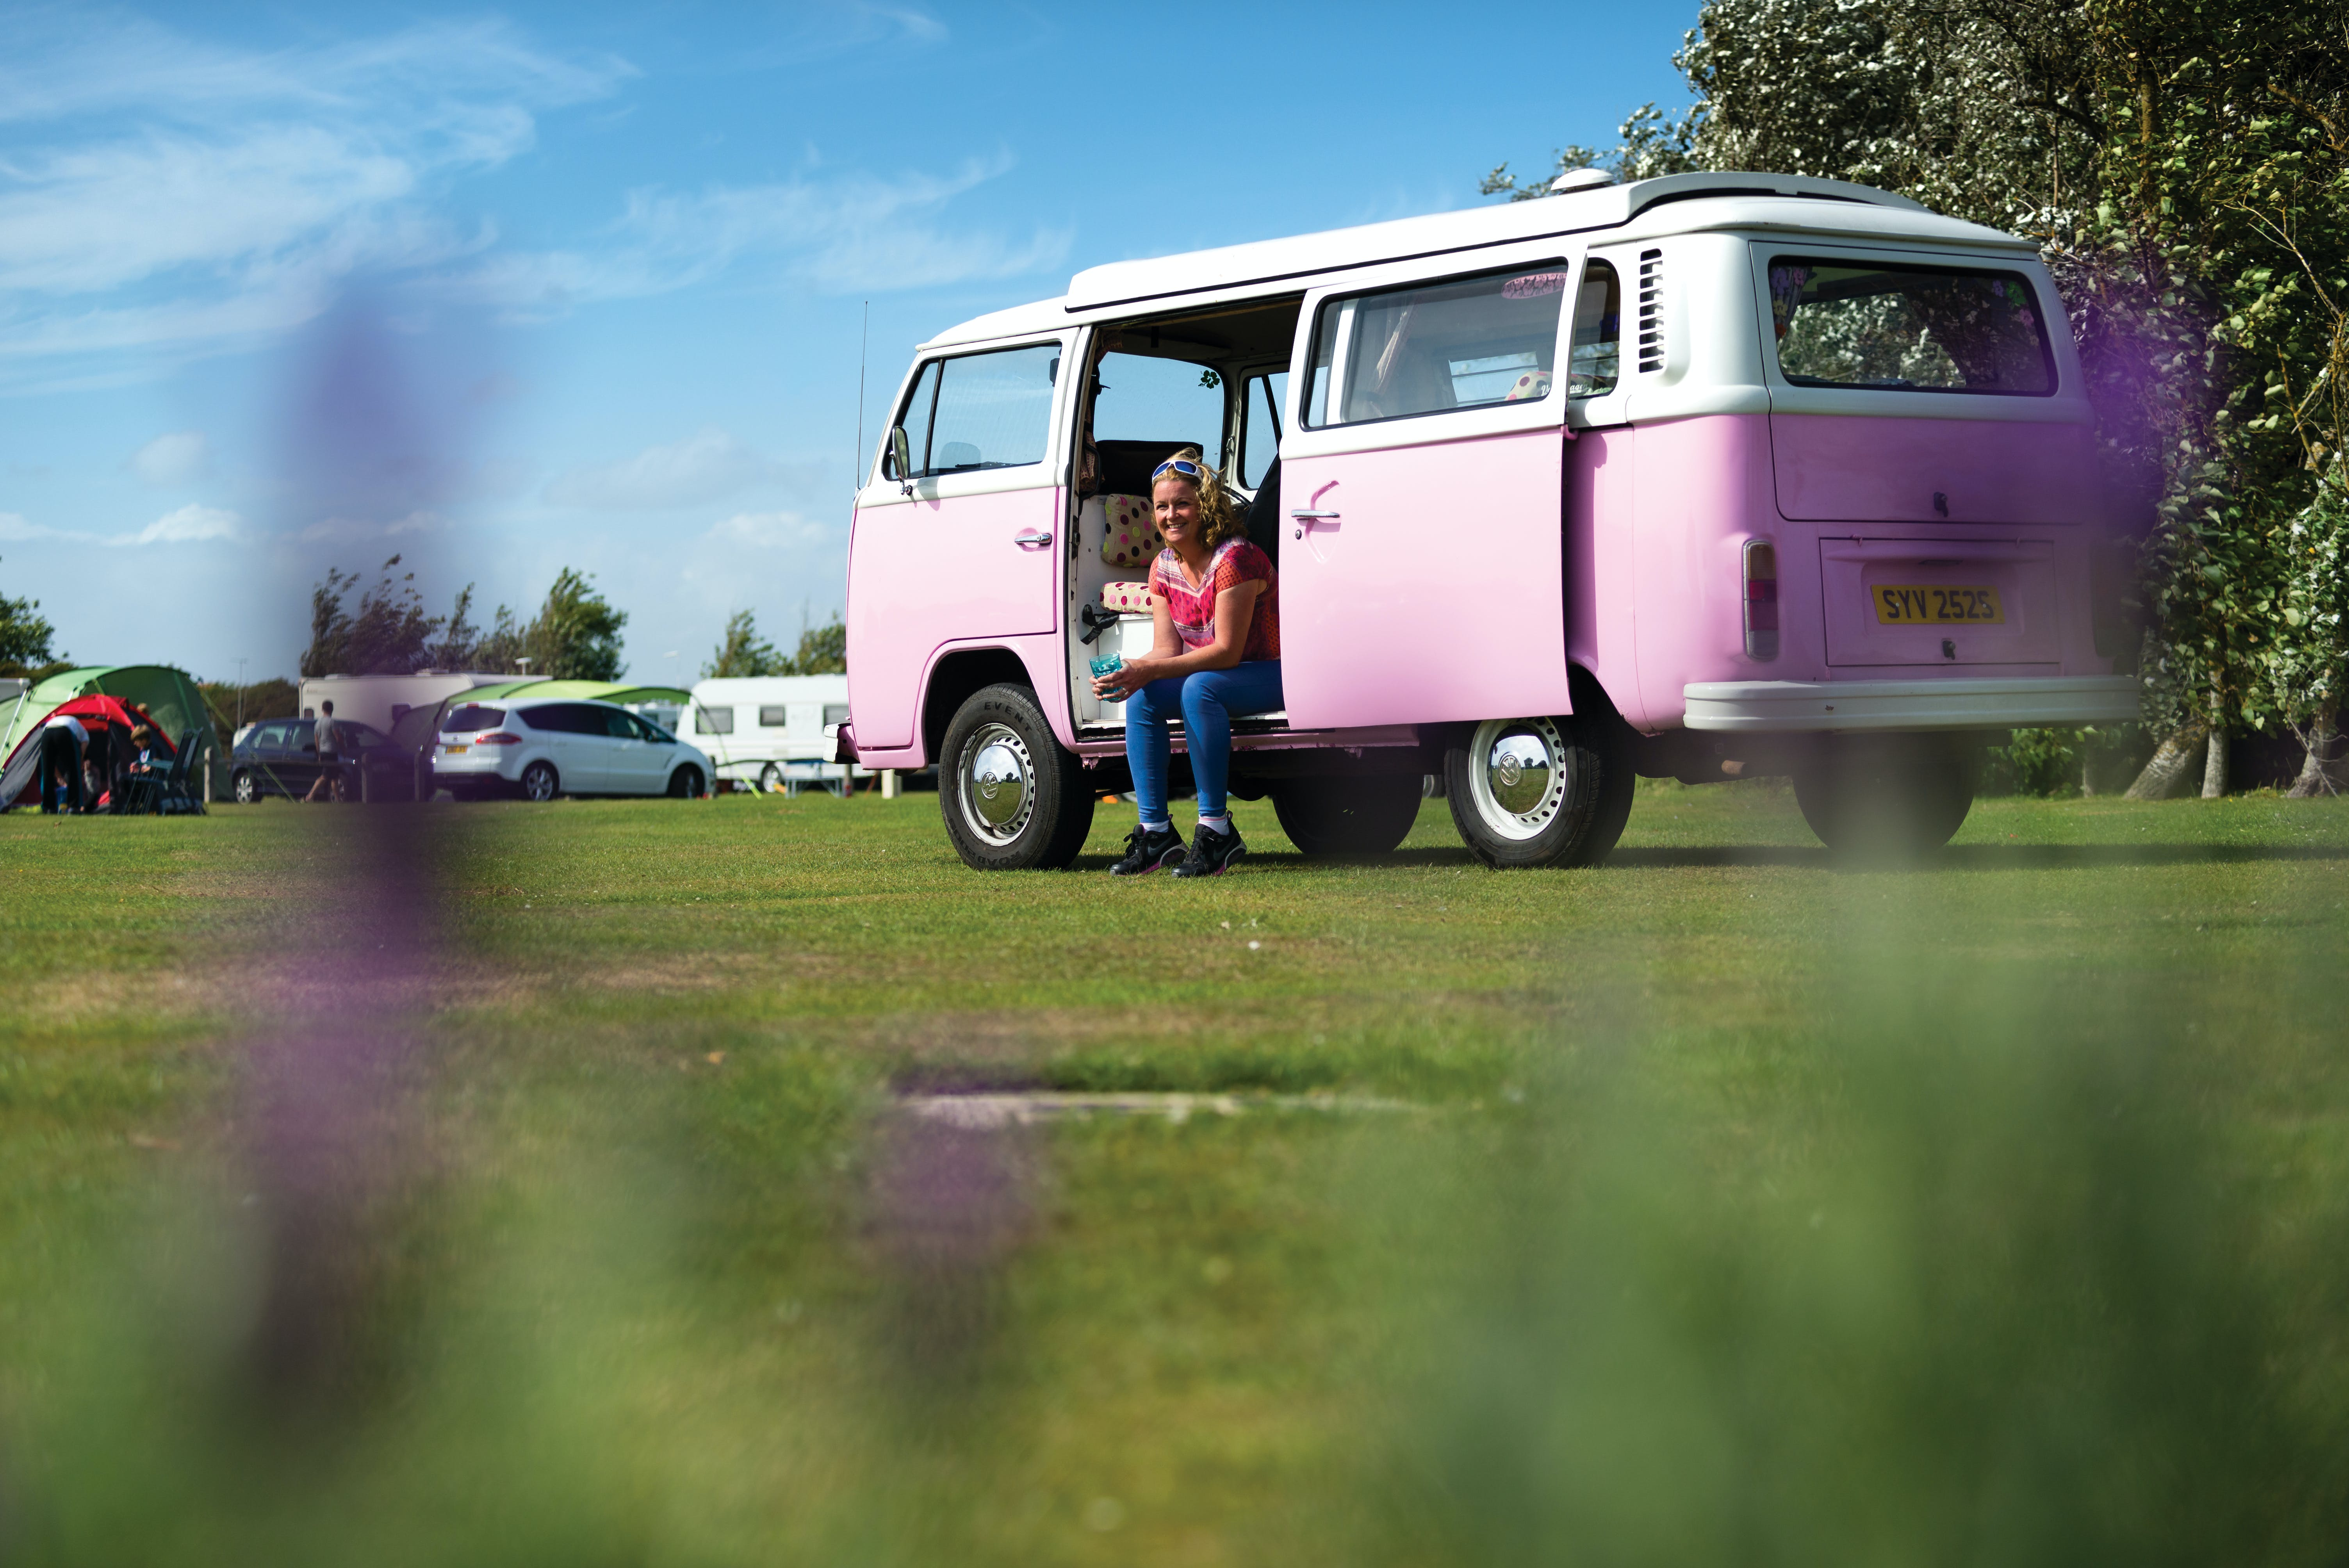 Image of a camper van in a field on a Warner Farm holiday